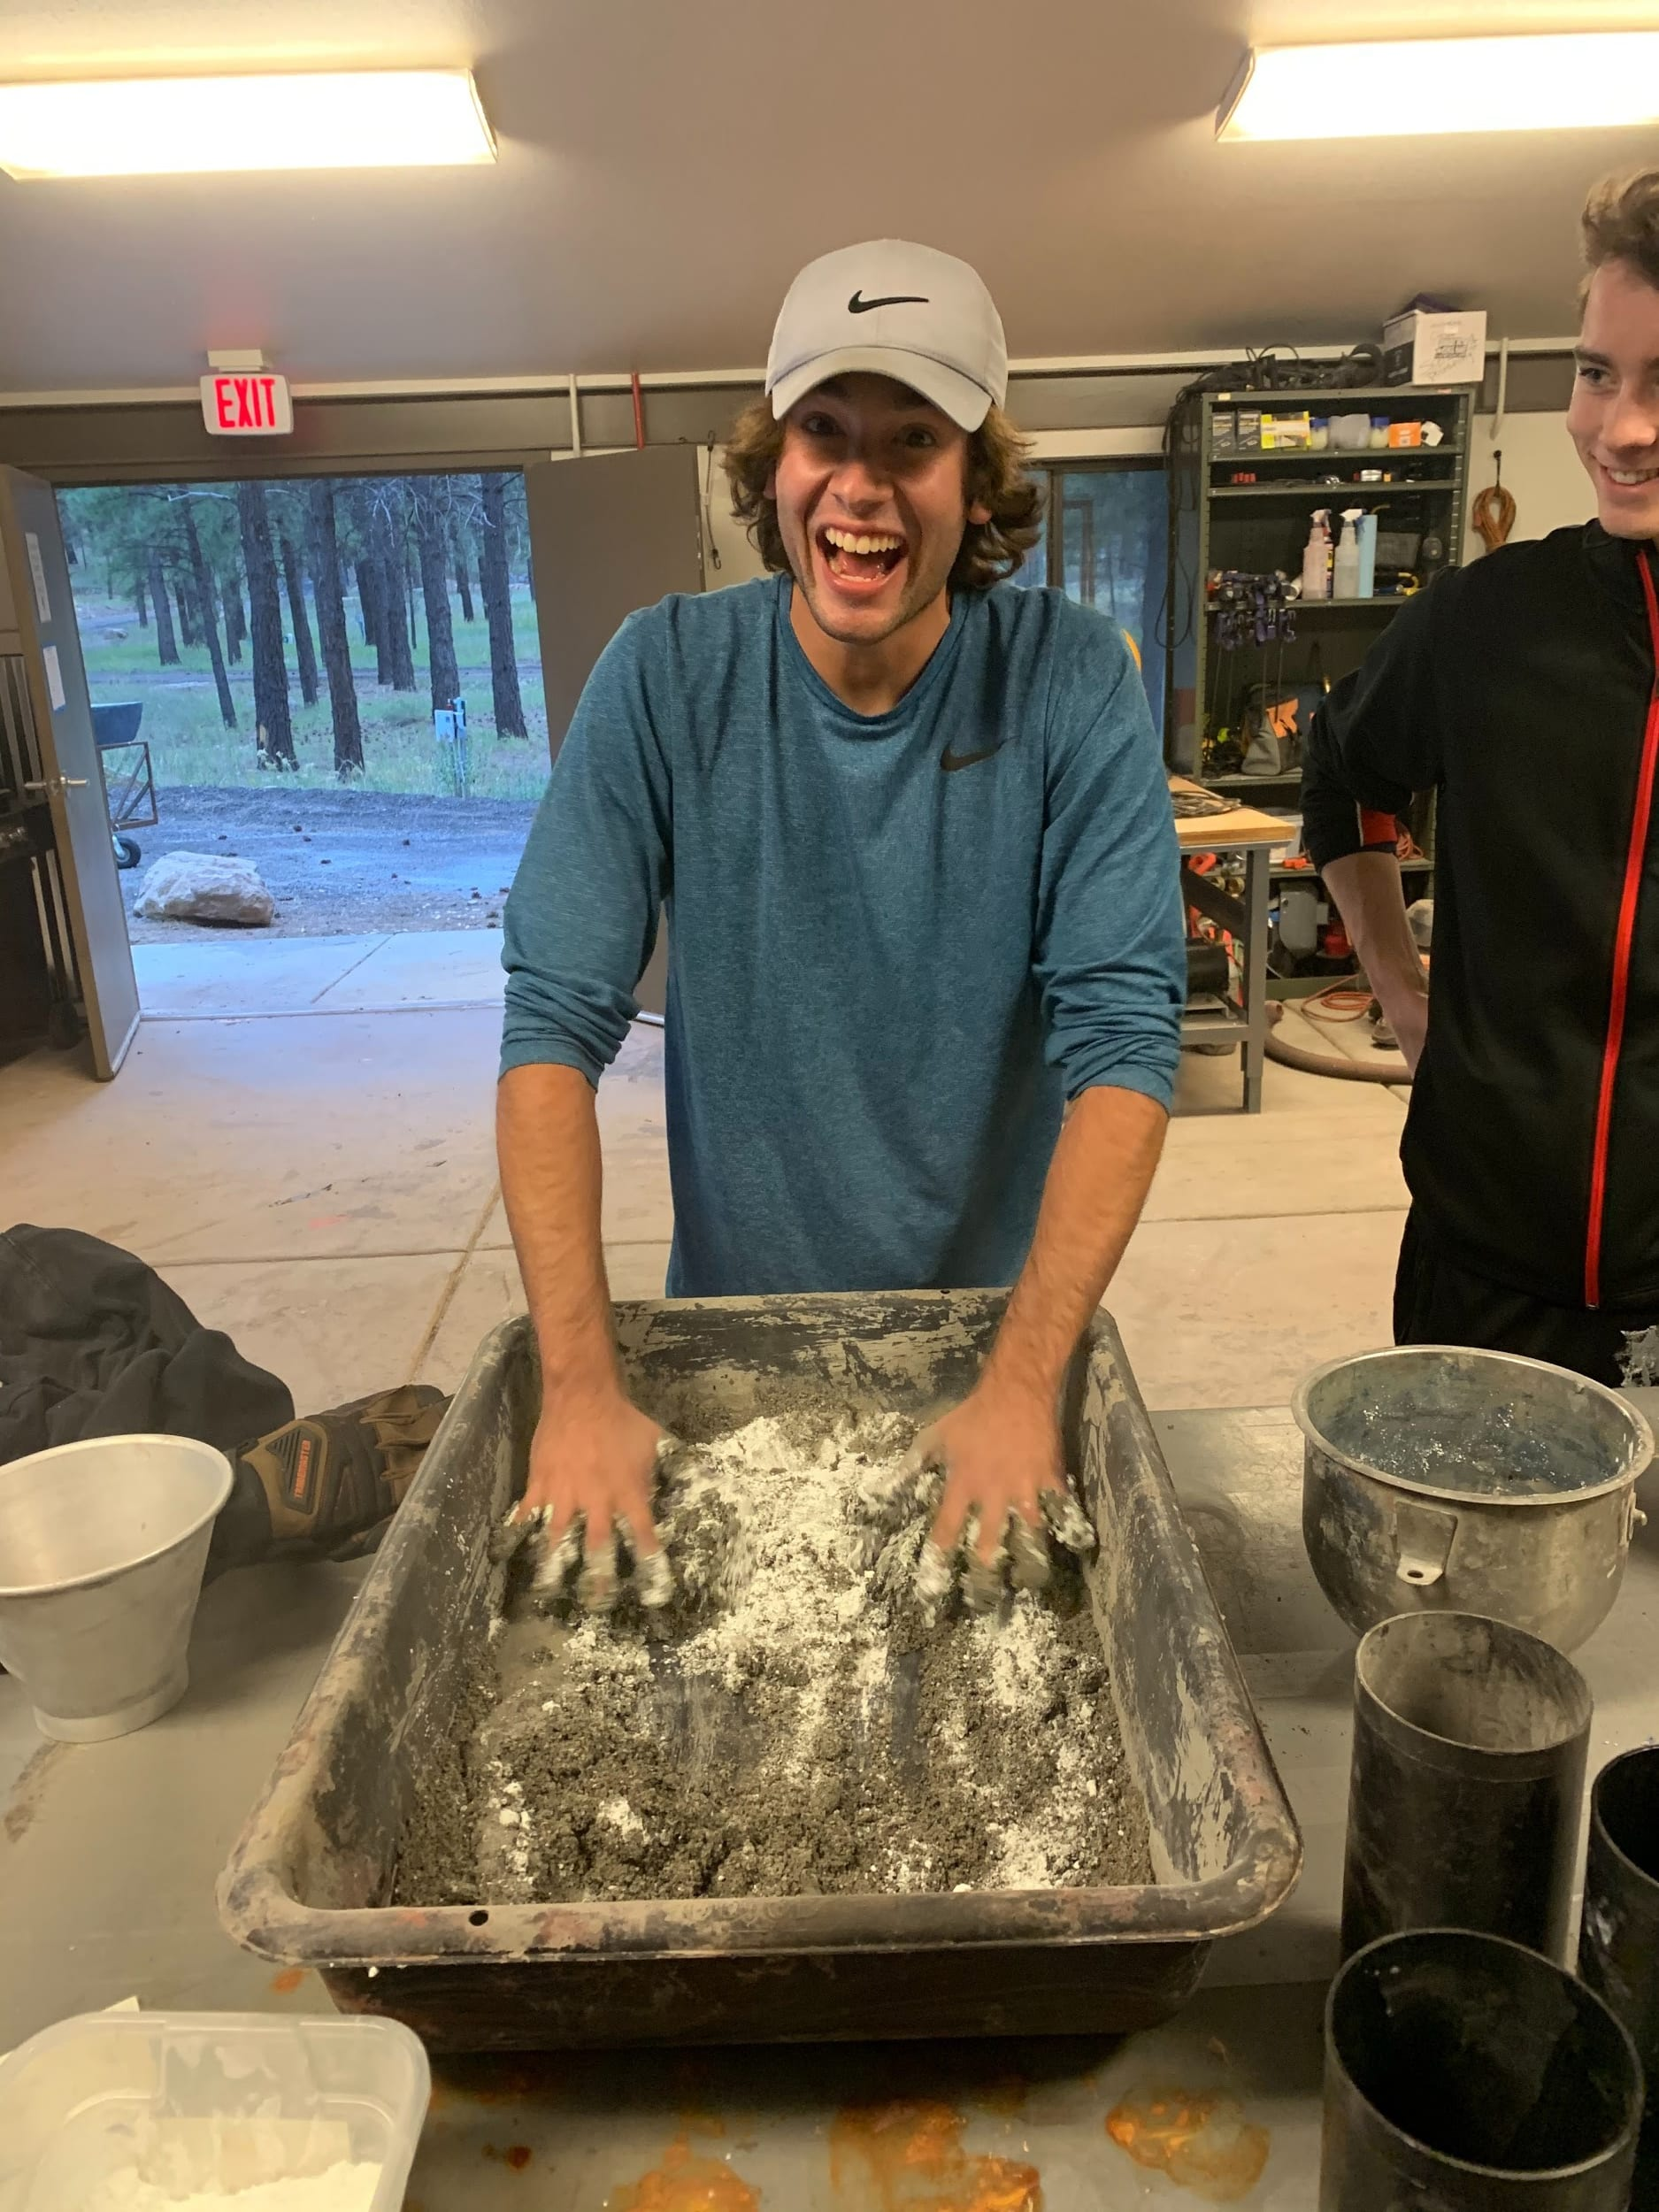 Kyle mixing concrete with his hands